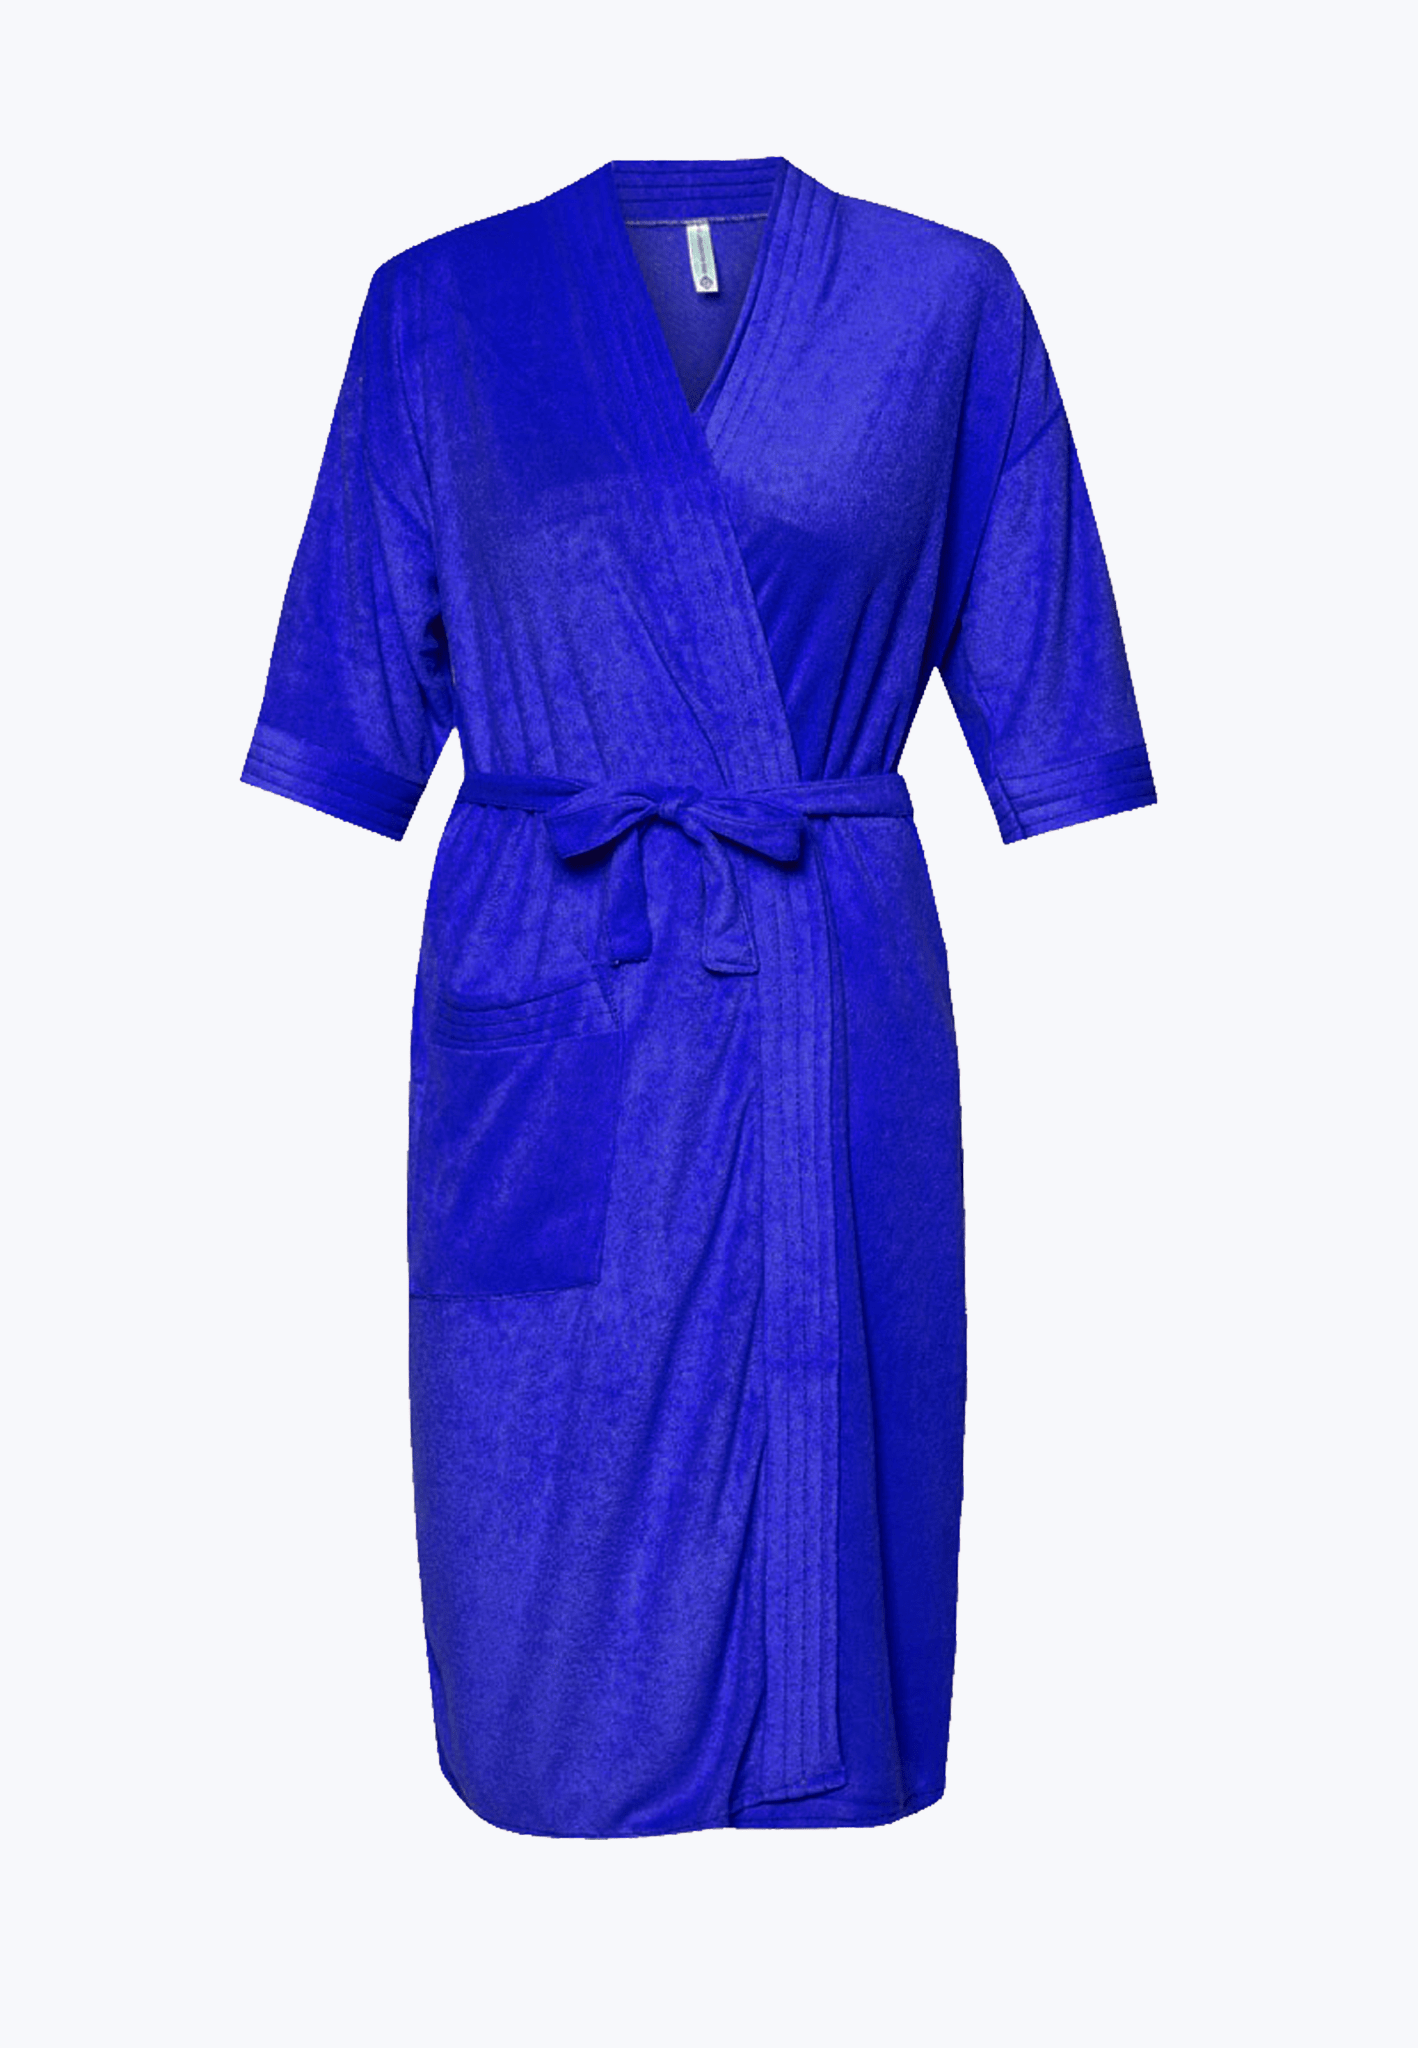 Swim Robe in Cobalt Blue